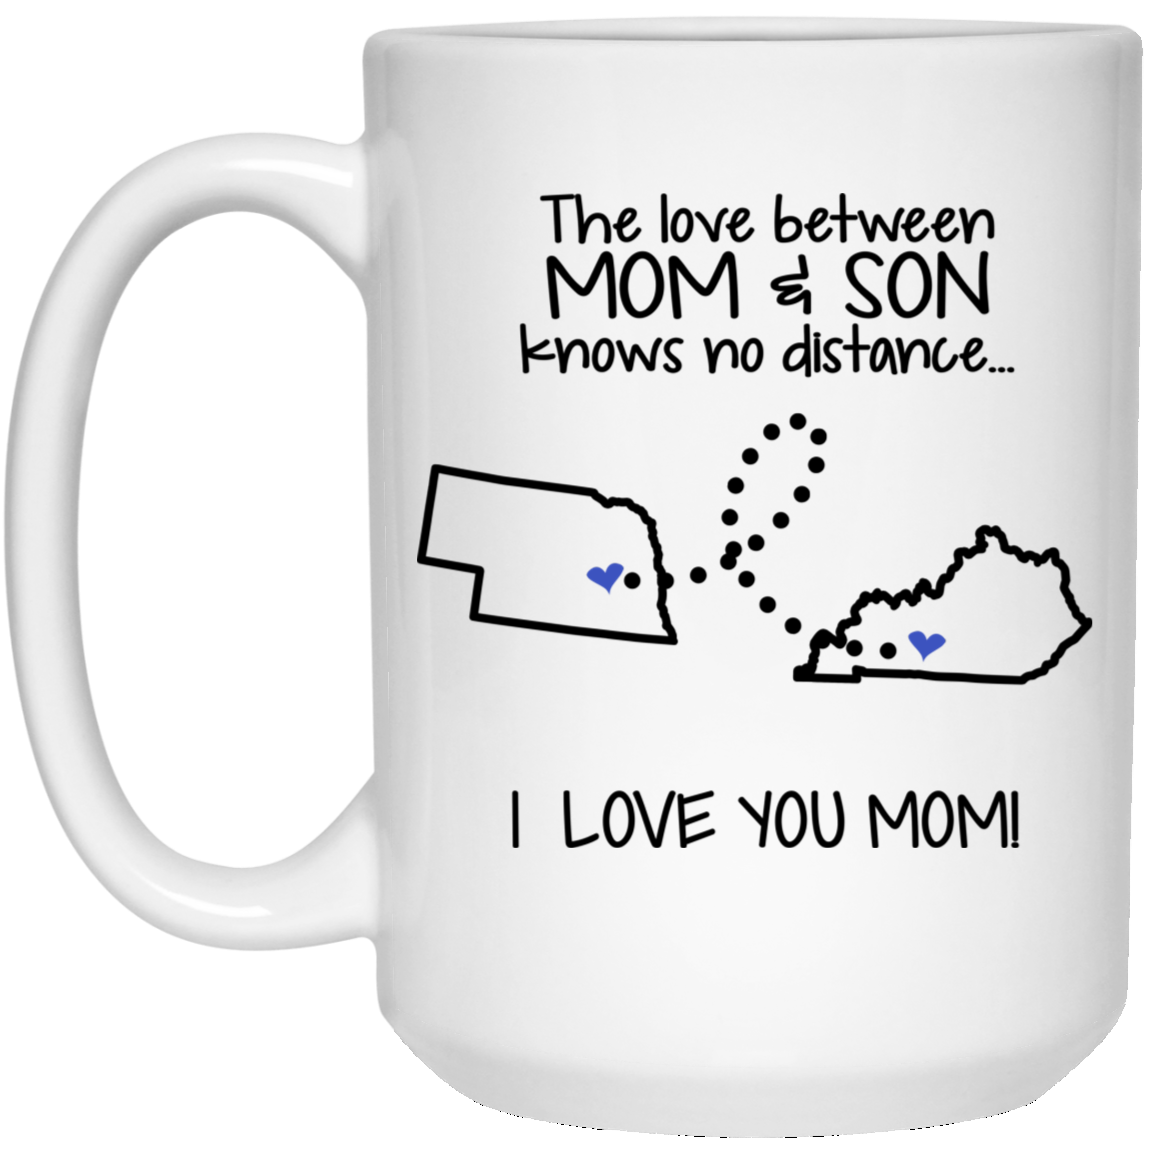 KENTUCKY NEBRASKA THE LOVE BETWEEN MOM AND SON